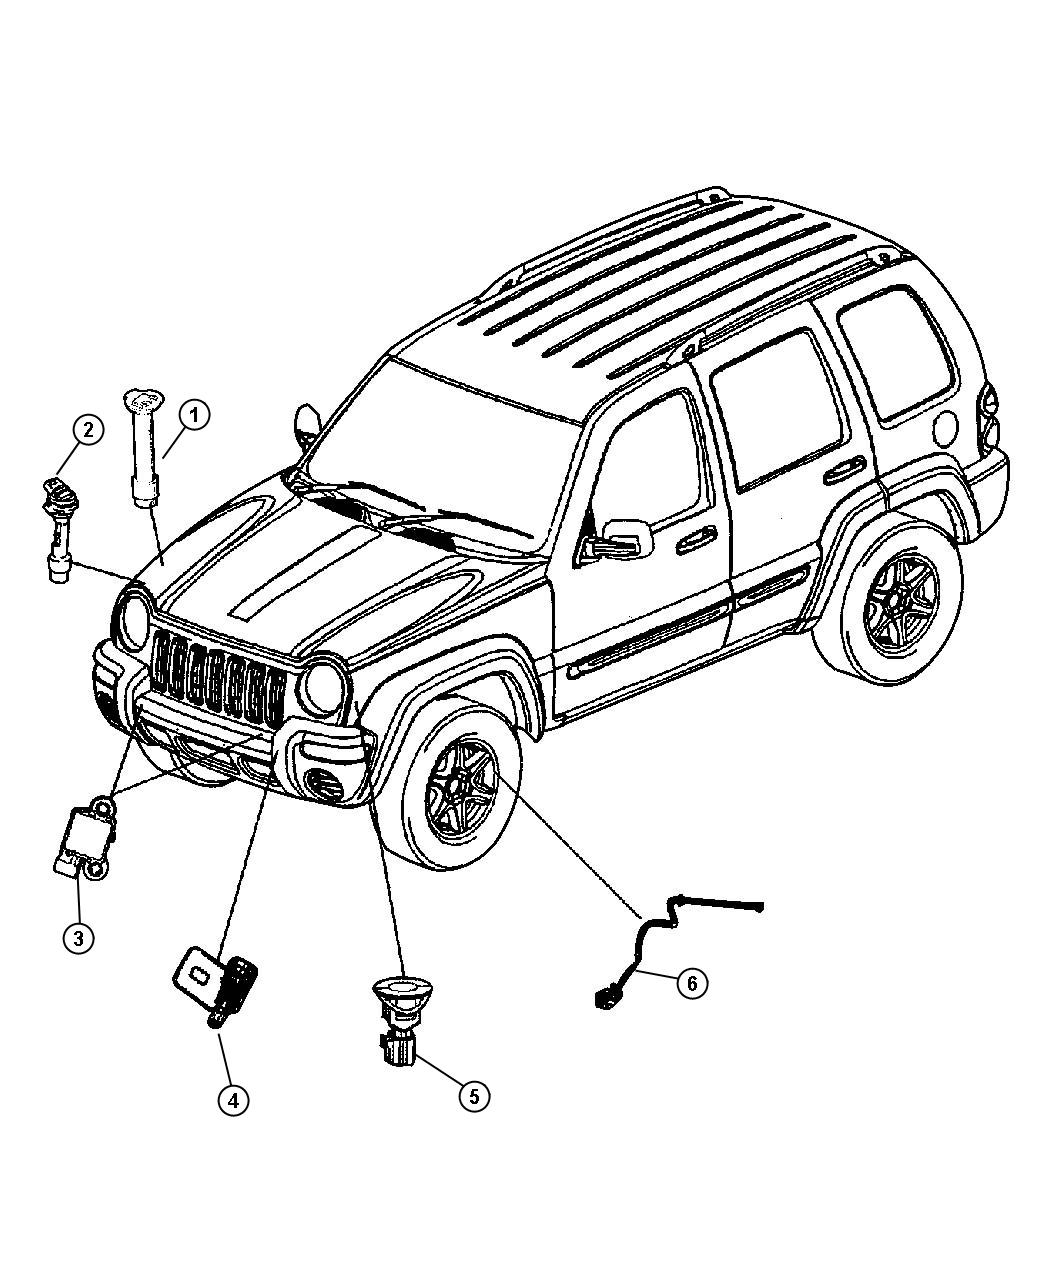 manualtransmission in addition CJ7 Quadra Trac Vacuum Diagram furthermore GM NV4500 Trans moreover Gm Steering Wheel Parts besides How To Read Car Wiring Diagrams. on jeep wrangler automatic transmission parts html